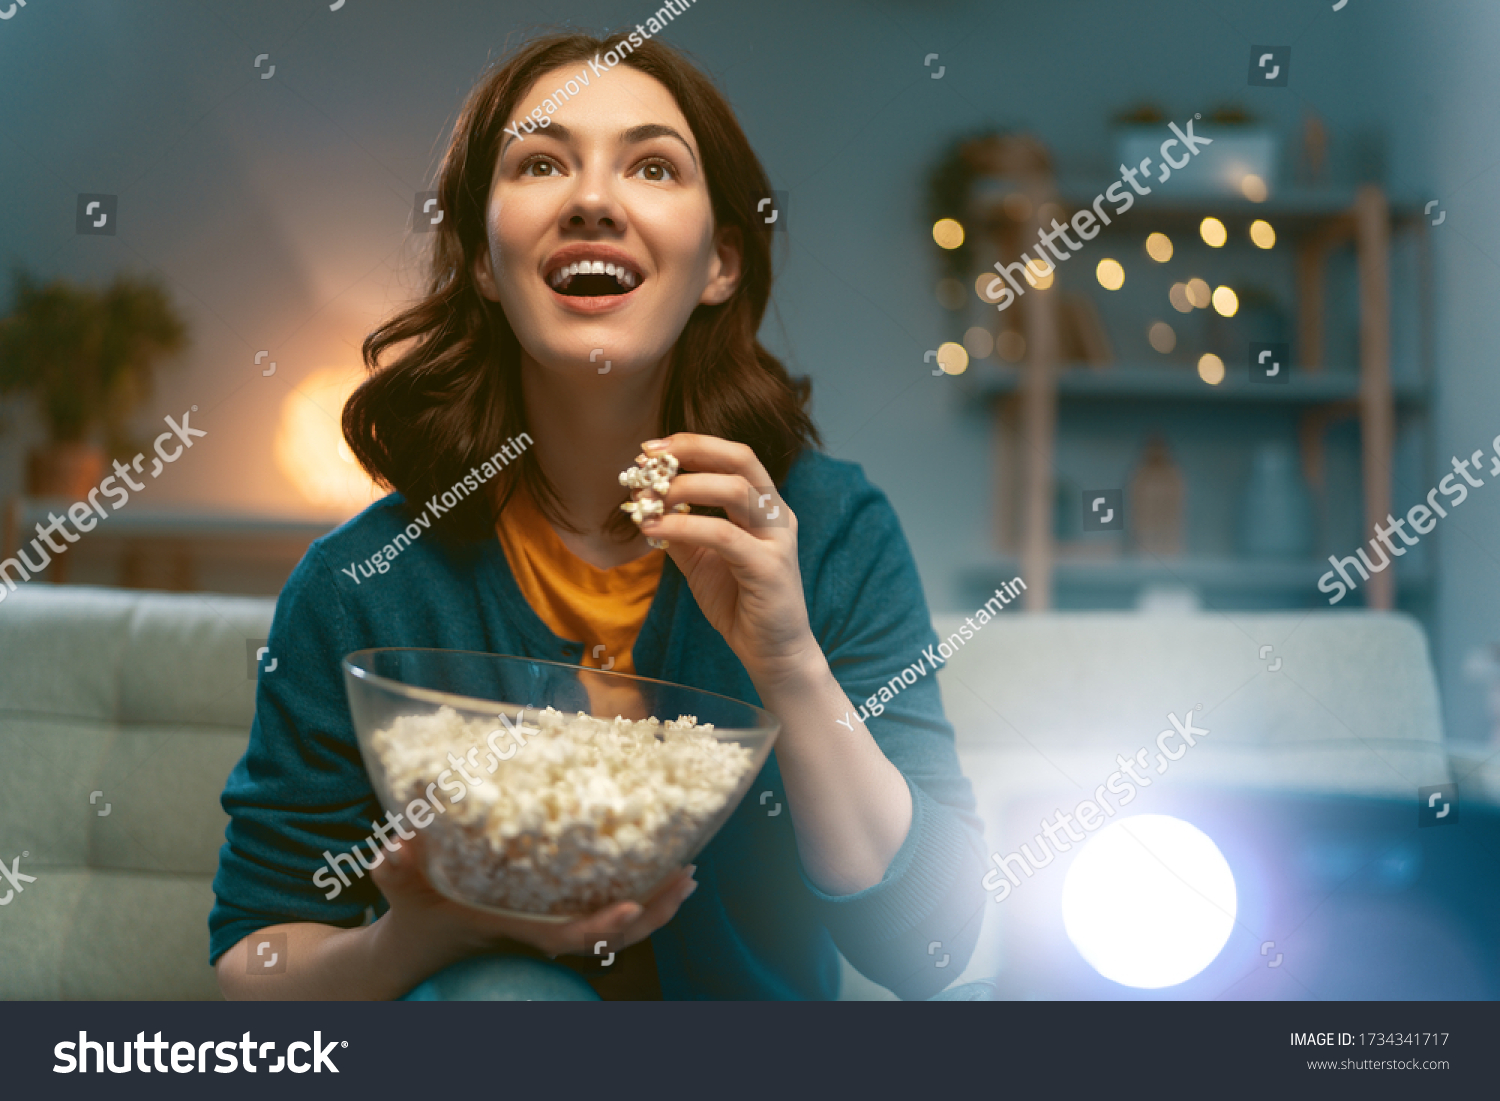 Young woman watching projector, TV, movies with popcorn in the evening. Girl spending time at home. #1734341717